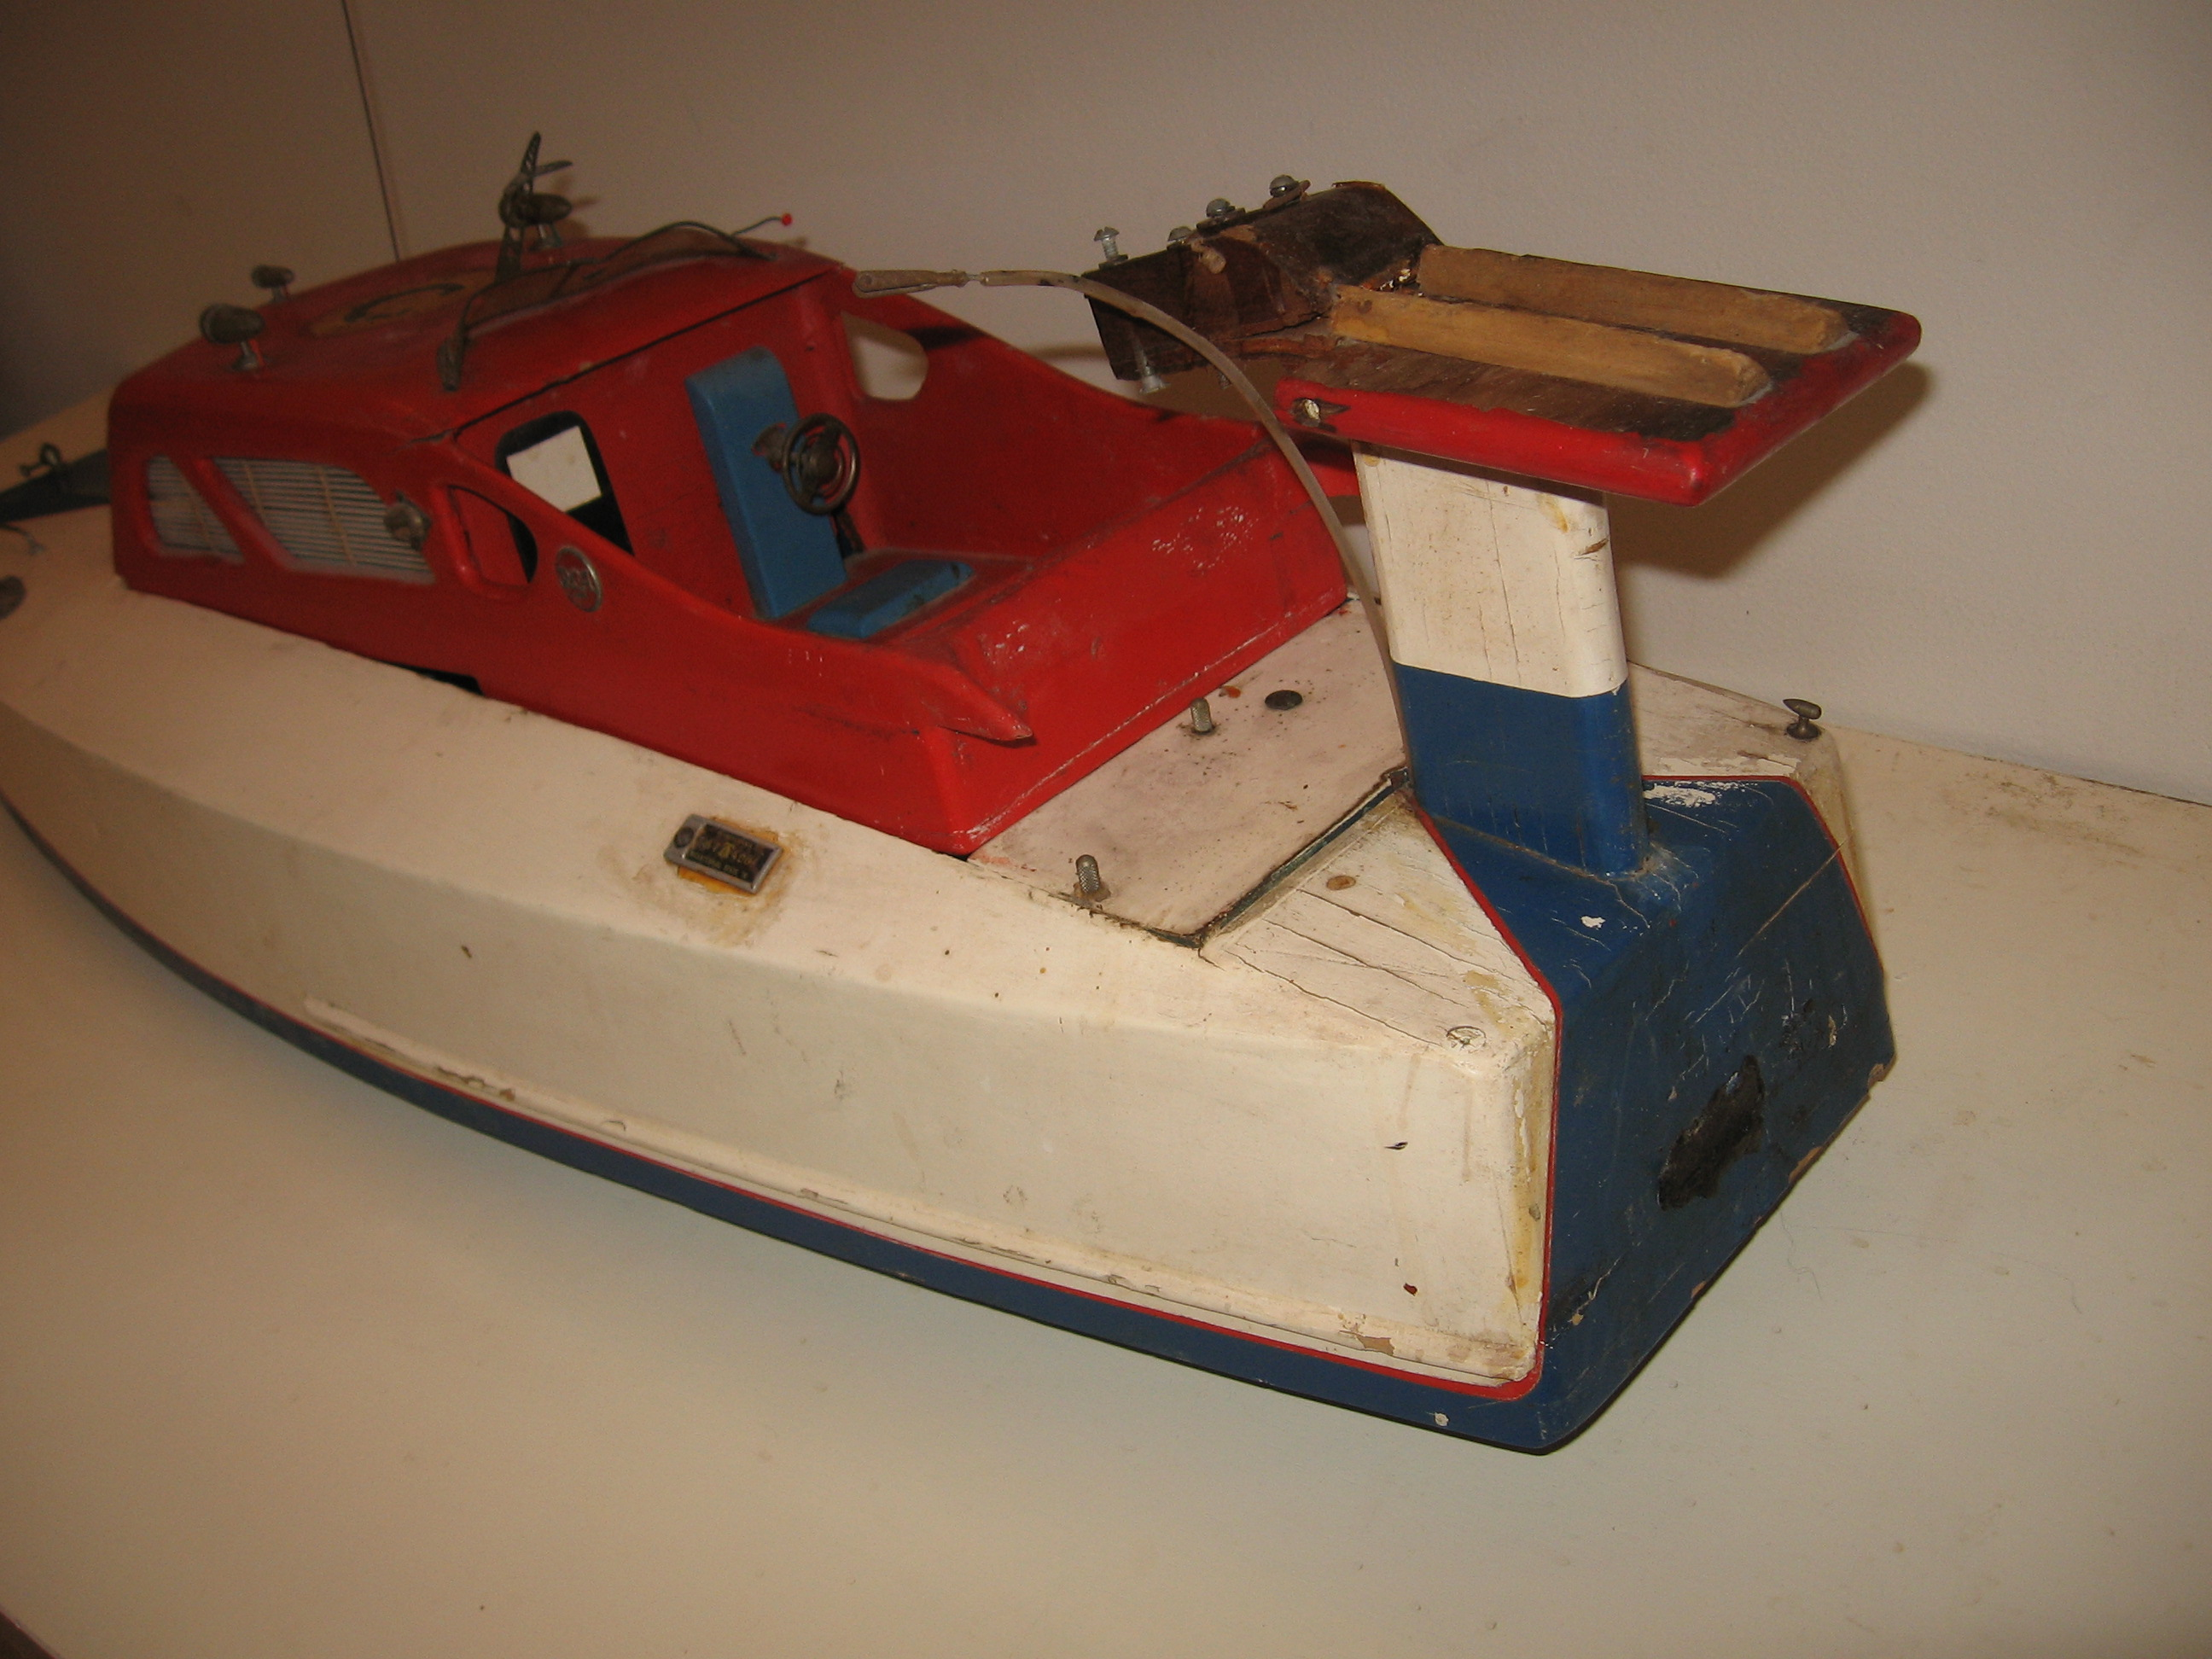 Click image for larger version  Name:RC boats 006.JPG Views:55 Size:1.01 MB ID:1977723